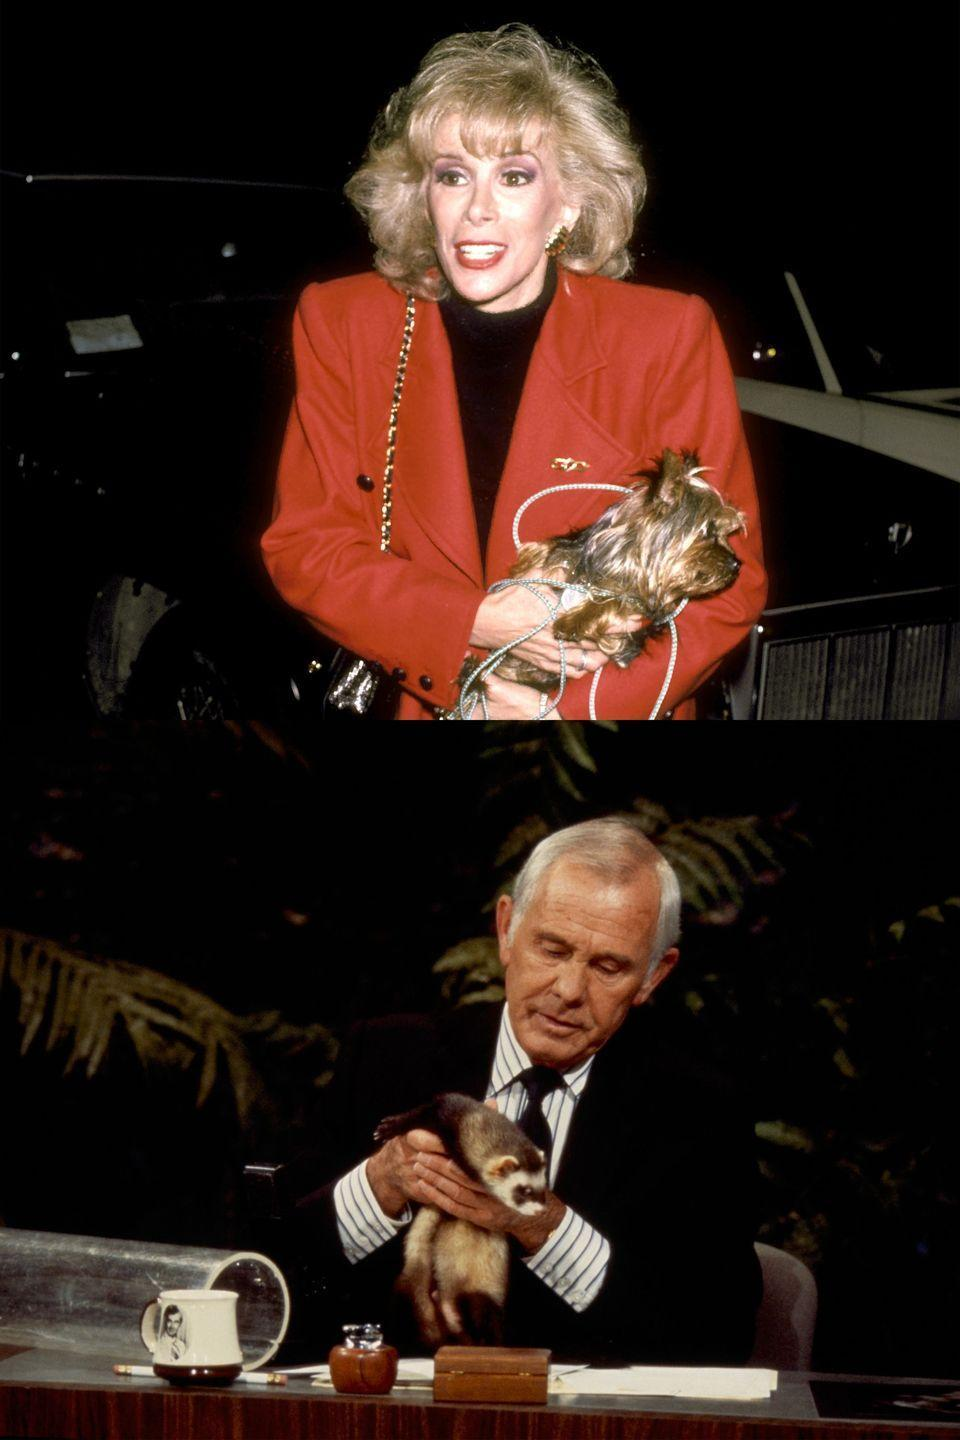 "<p>Long before she was eviscerating fugly red carpet dresses, Rivers was a staple of <em>The Tonight Show With Johnny Carson</em>. She filled in for the host frequently and eventually became the show's permanent guest host. So it was quite a shock when she left to host her own show,<em> The Late Show Starring Joan Rivers</em>. Carson felt betrayed and <a href=""http://people.com/celebrity/joan-rivers-and-johnny-carsons-history-on-the-tonight-show/"" rel=""nofollow noopener"" target=""_blank"" data-ylk=""slk:banned her"" class=""link rapid-noclick-resp"">banned her</a> from appearing on his show, which his replacement Jay Leno continued through his tenure. It wasn't until Jimmy Fallon took over the reins in 2014 that Rivers was <a href=""http://variety.com/2014/tv/news/joan-rivers-returns-to-tonight-show-after-decades-long-ban-1201109889/"" rel=""nofollow noopener"" target=""_blank"" data-ylk=""slk:finally allowed"" class=""link rapid-noclick-resp"">finally allowed</a> to grace the set again.</p>"